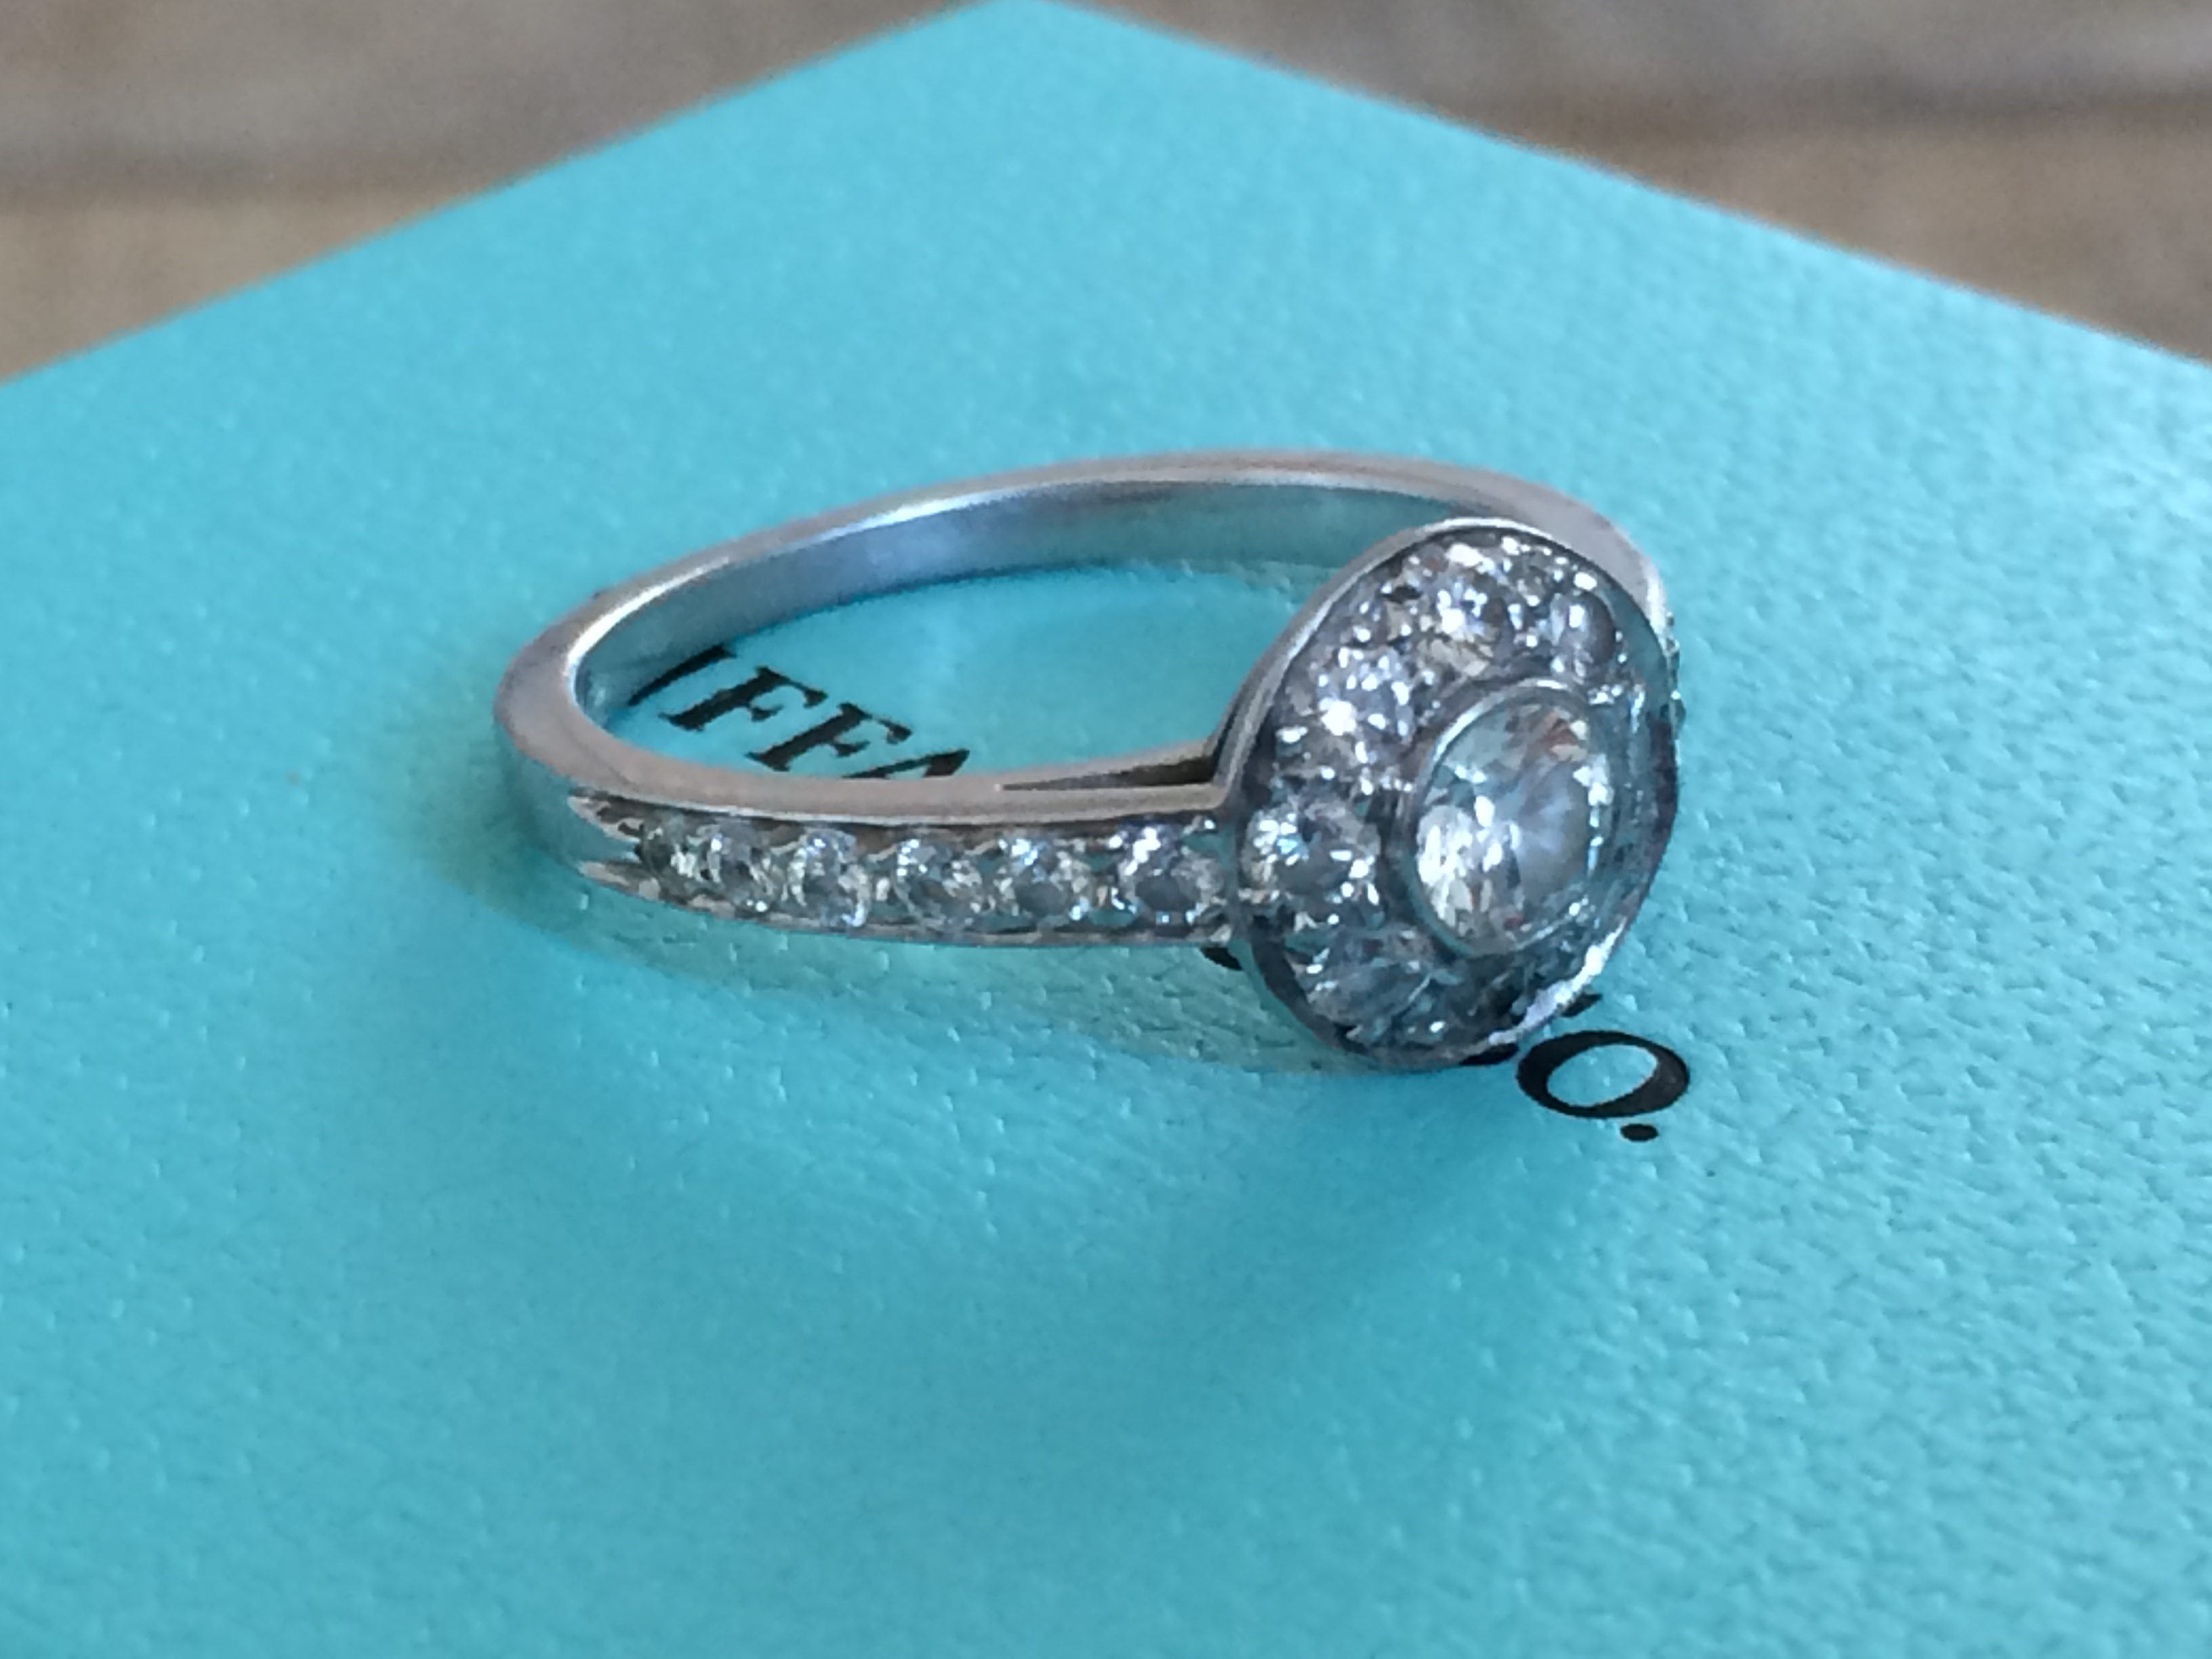 7b9ba21ea6da1 Tiffany & Co Circlet Engagement Ring